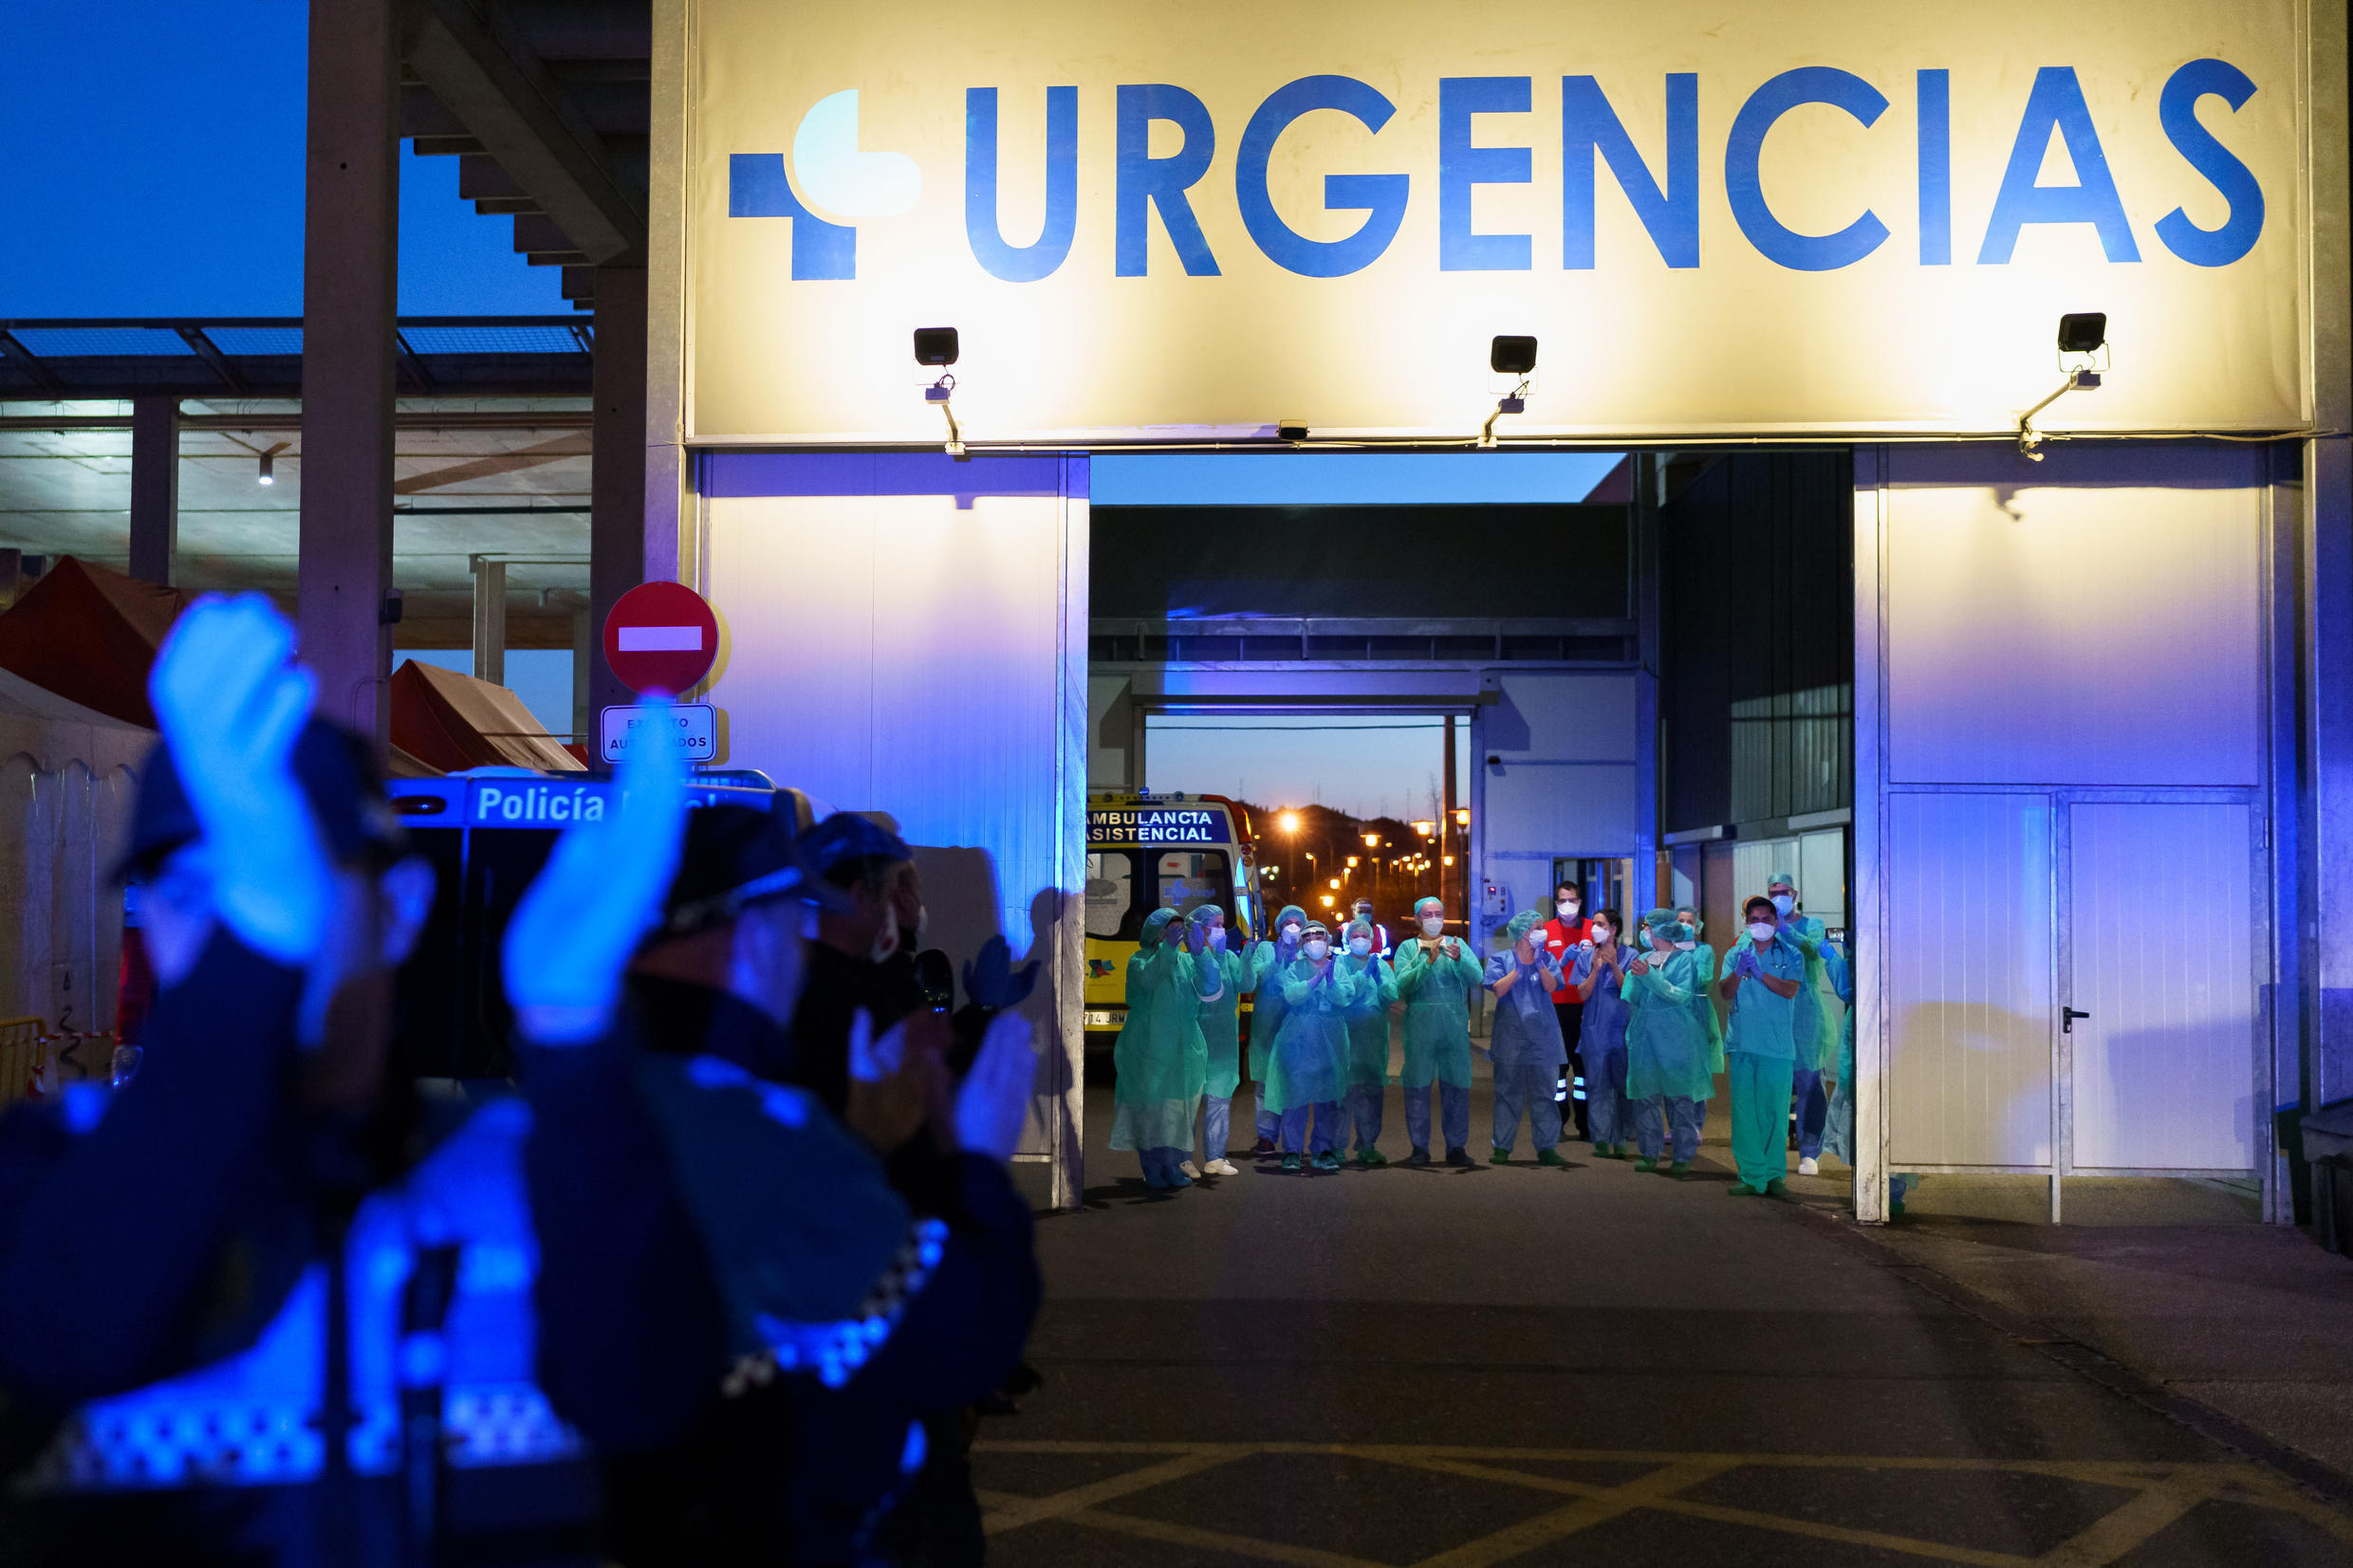 Healthcare workers dealing with the new coronavirus crisis applaud in return as they are cheered on by people outside the Burgos general hospital in Burgos, Spain on March 25, 2020.